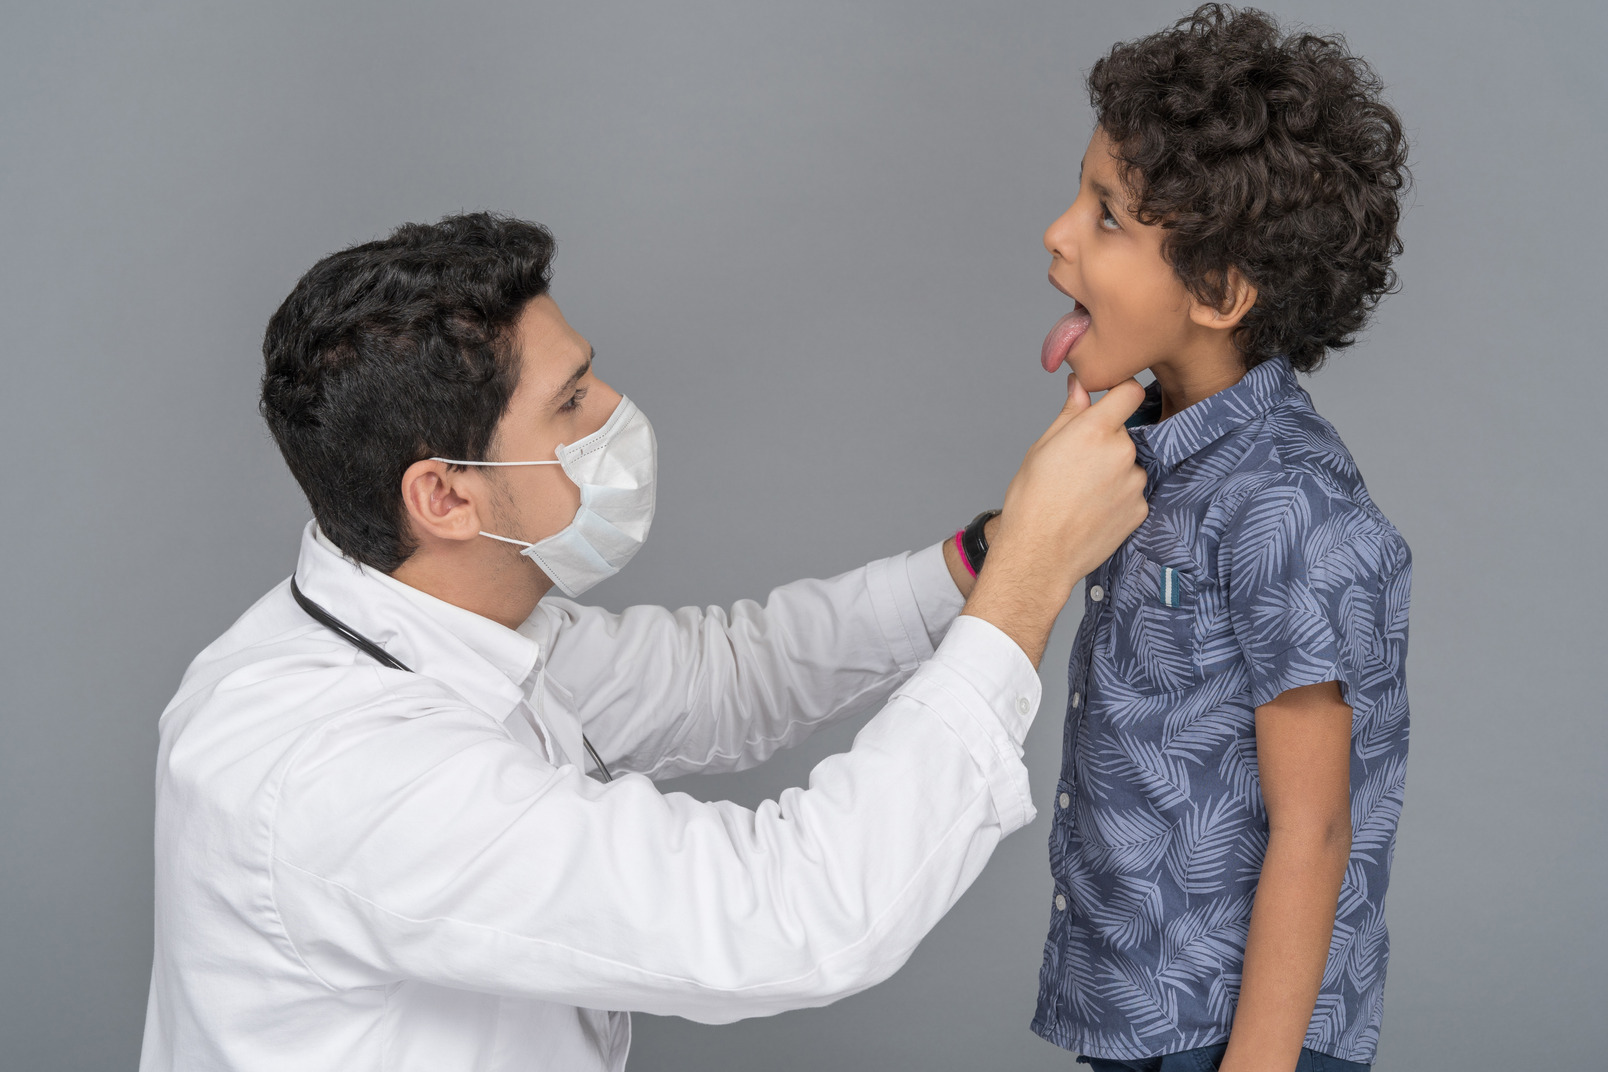 Doctor and boy